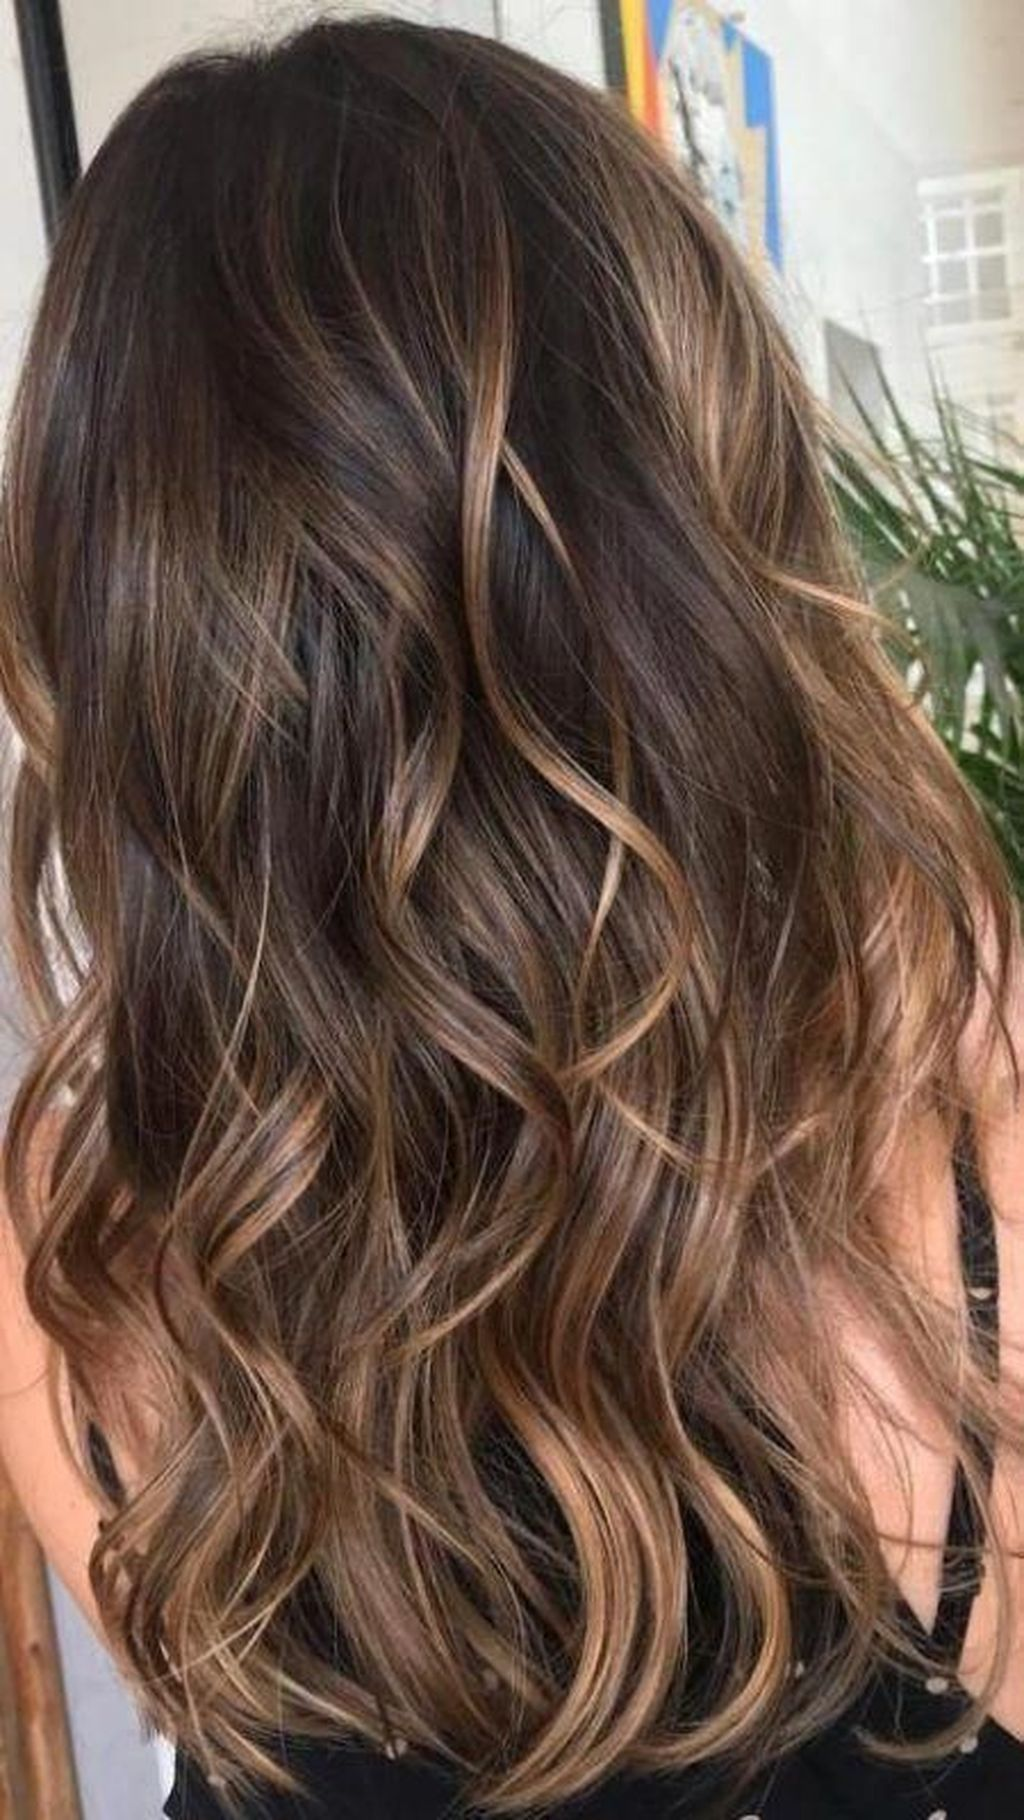 Marvelous Balayage Hairstyles With Long Layers For 2019 Page 6 Of 31 Easy Hairstyles Black Hair Balayage Brunette Hair Color Hair Color Light Brown